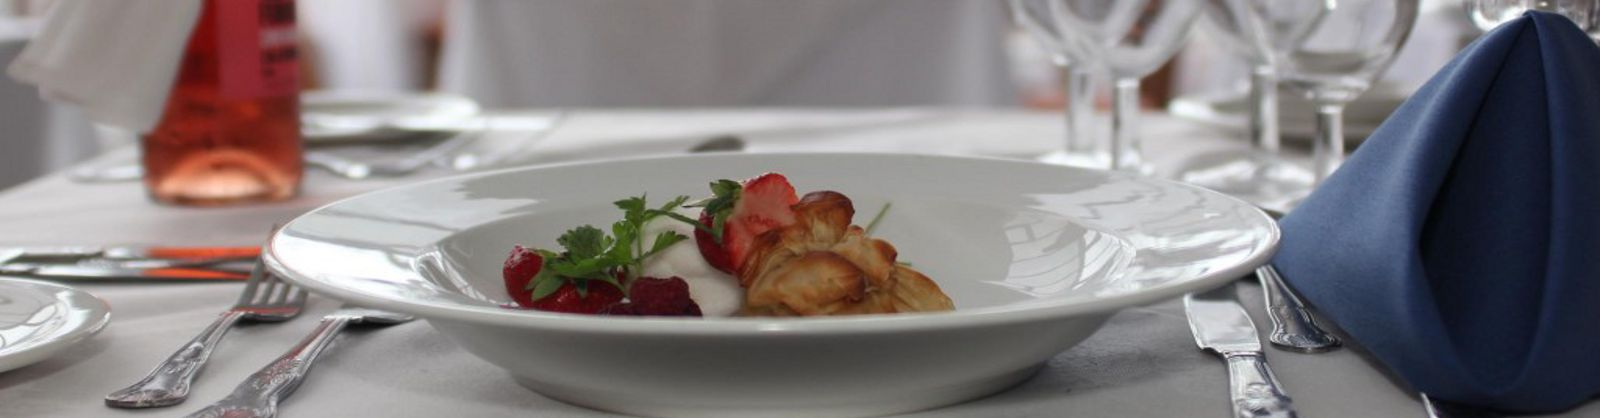 private-dining-riviera-hotel-bournemouth